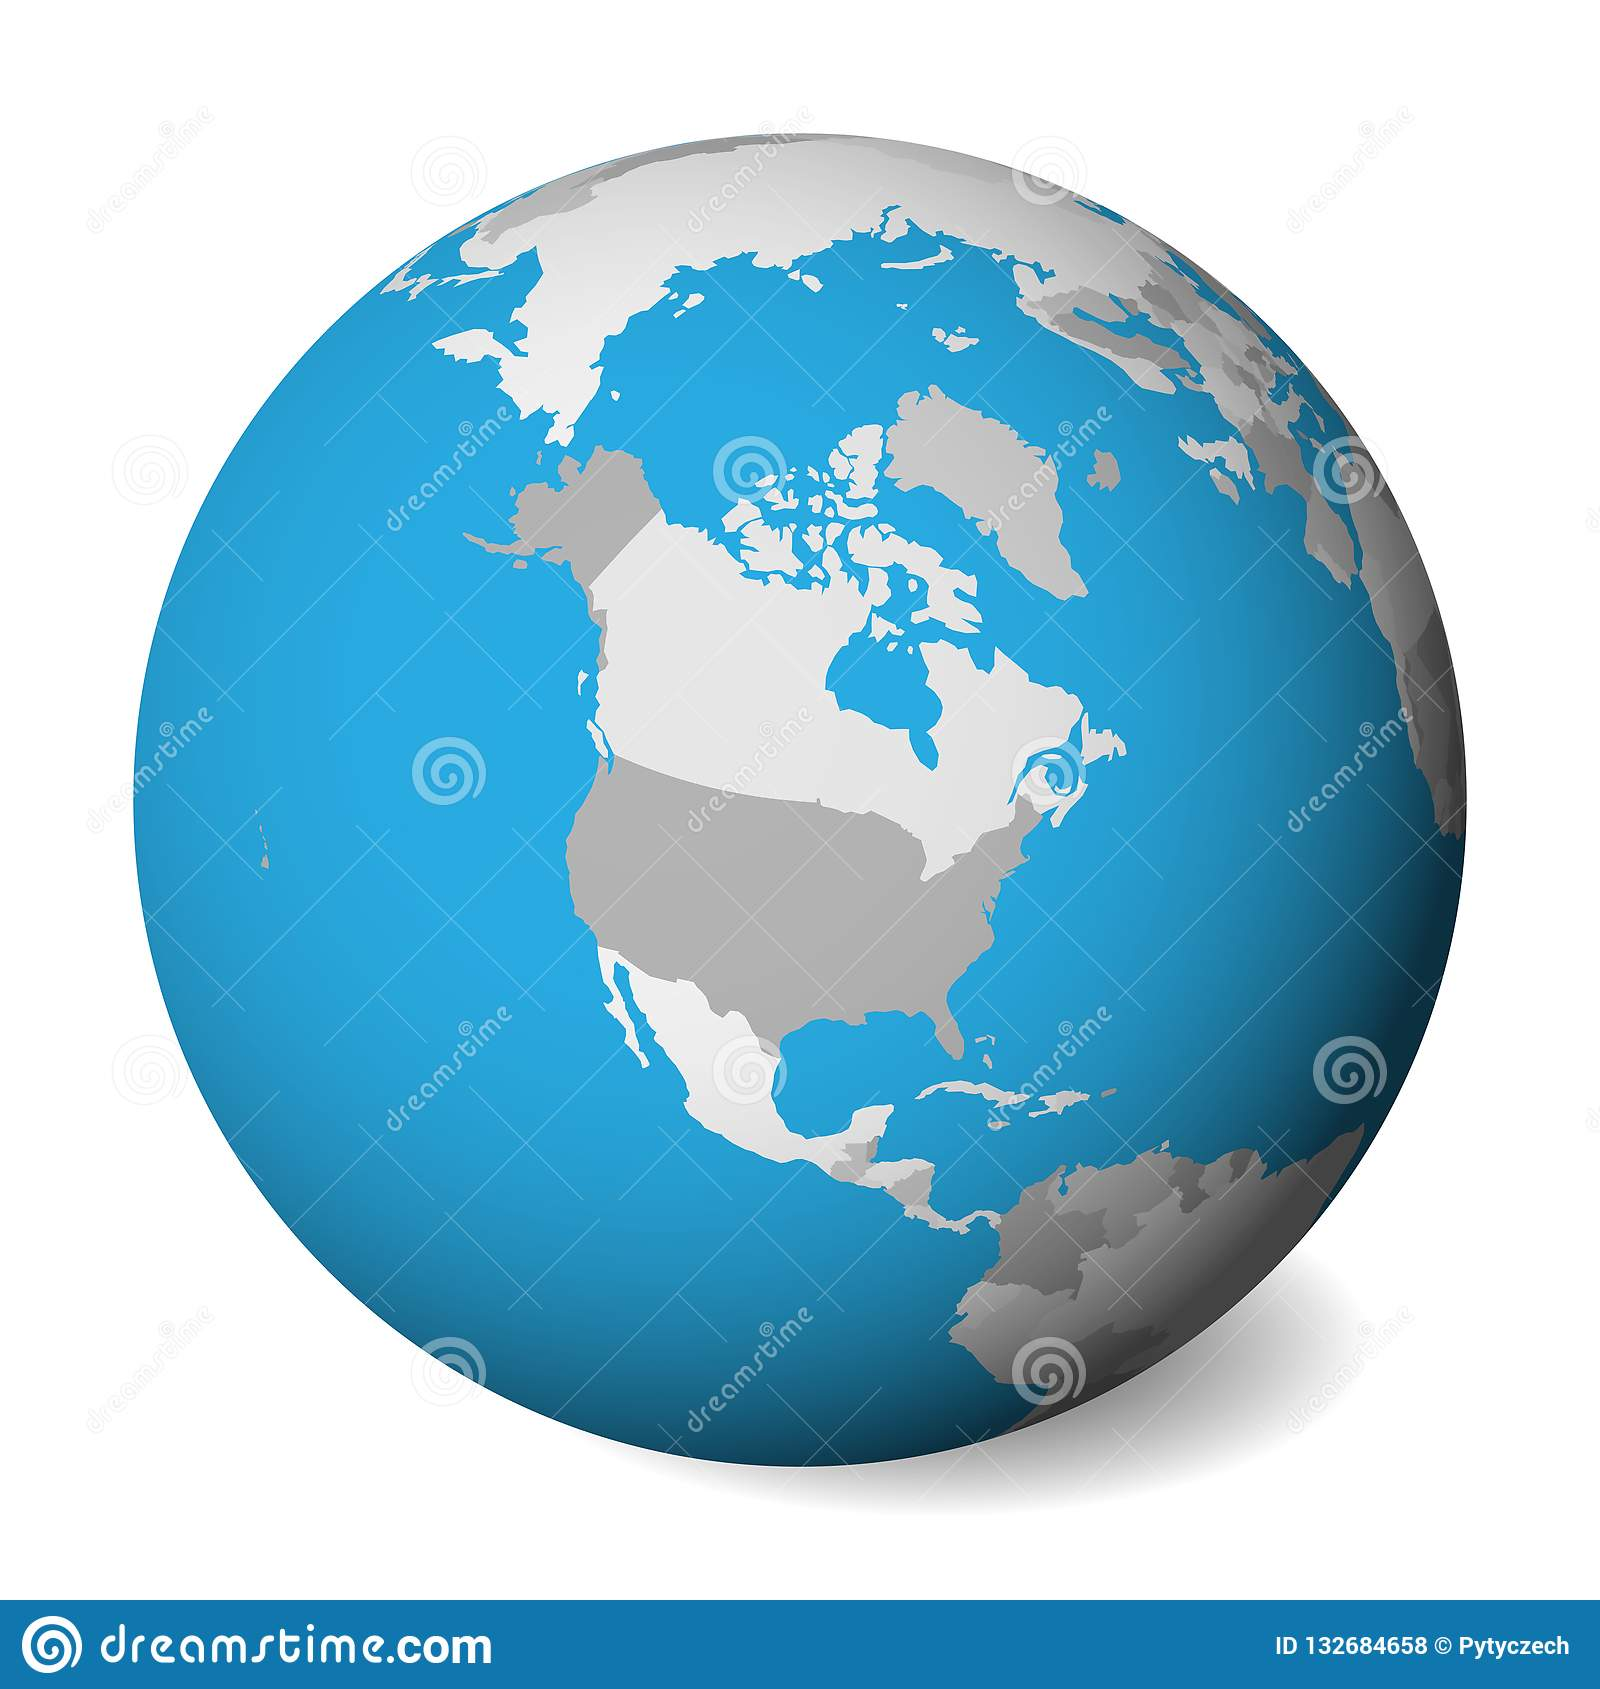 Blank Political Map Of North America. 3D Earth Globe With Blue Water on